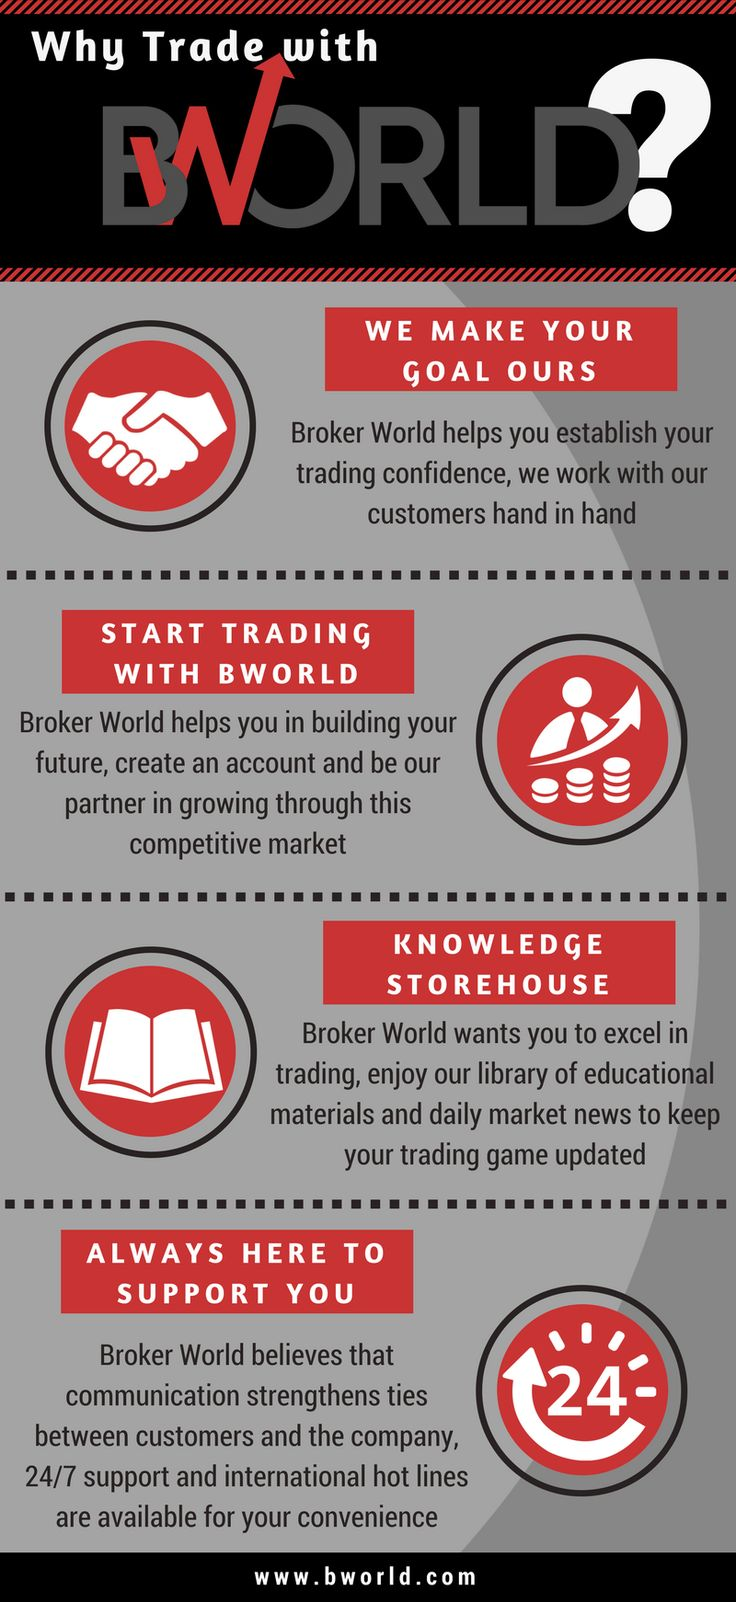 Learn the reasons why you should trade with BWorld through an infographic. Read more at http://bit.ly/2p0CrLa  Stay tuned at BWorldPedia for more updates #BWORLD